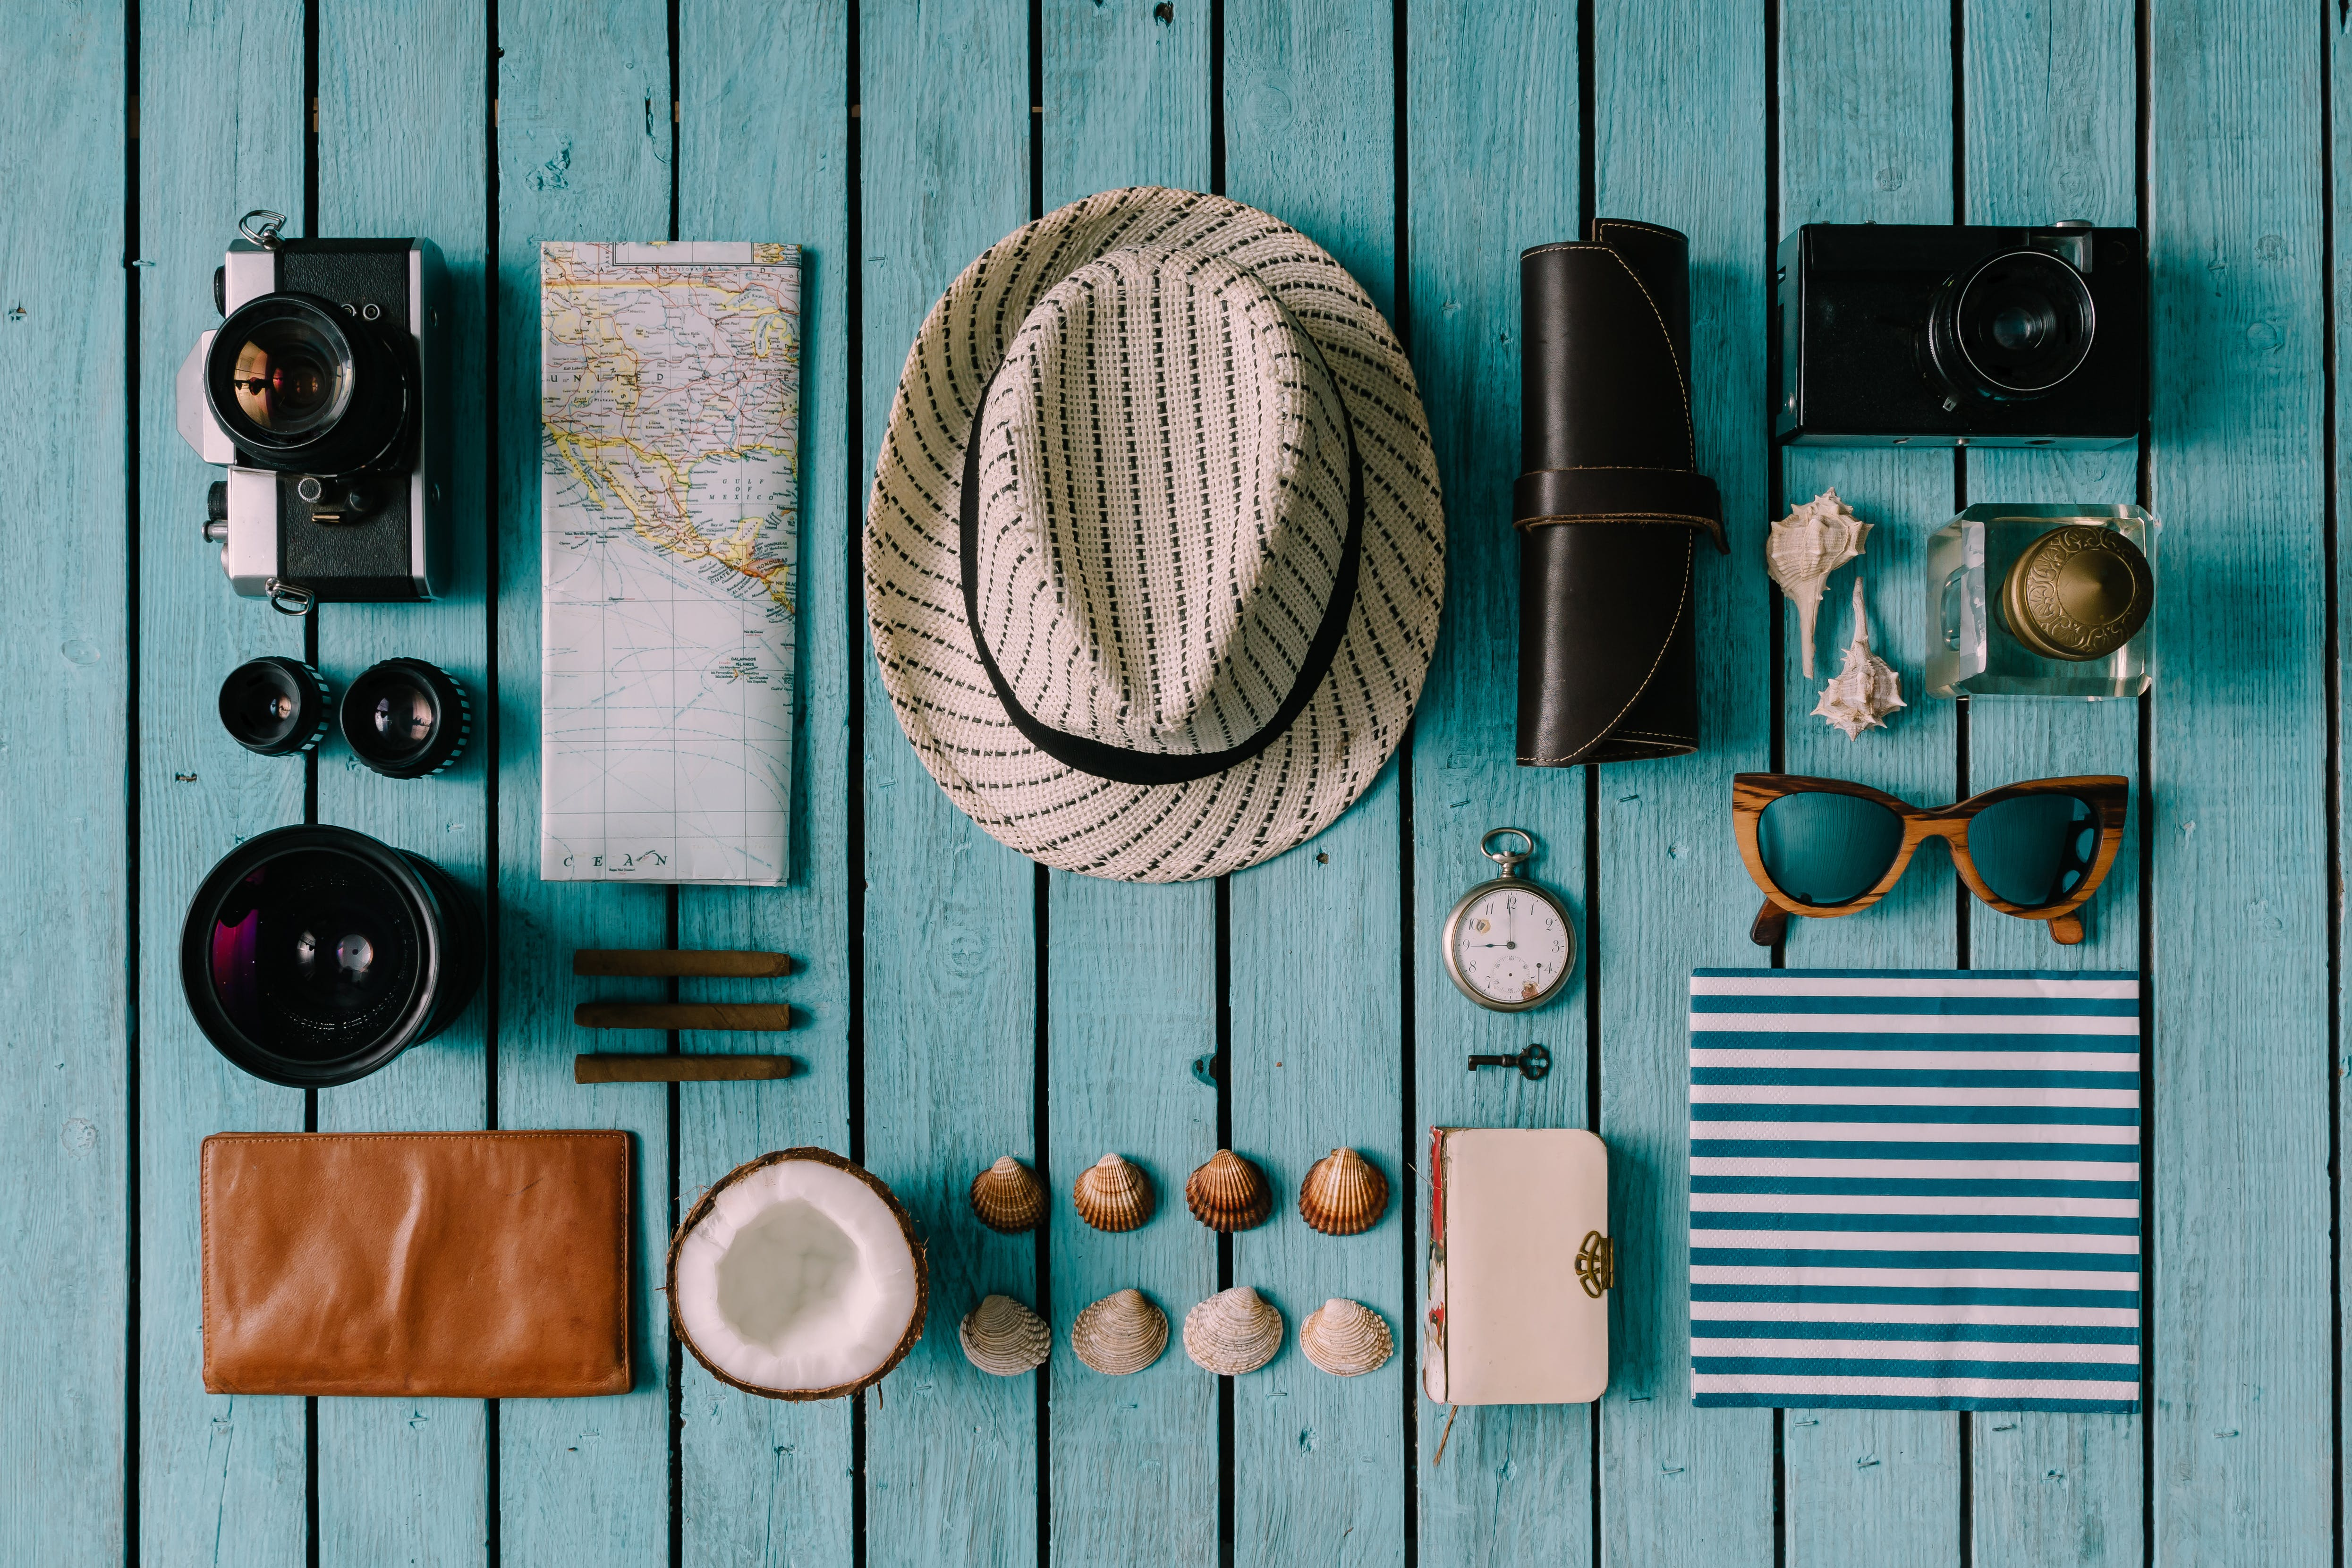 Summer vacation things neatly organised